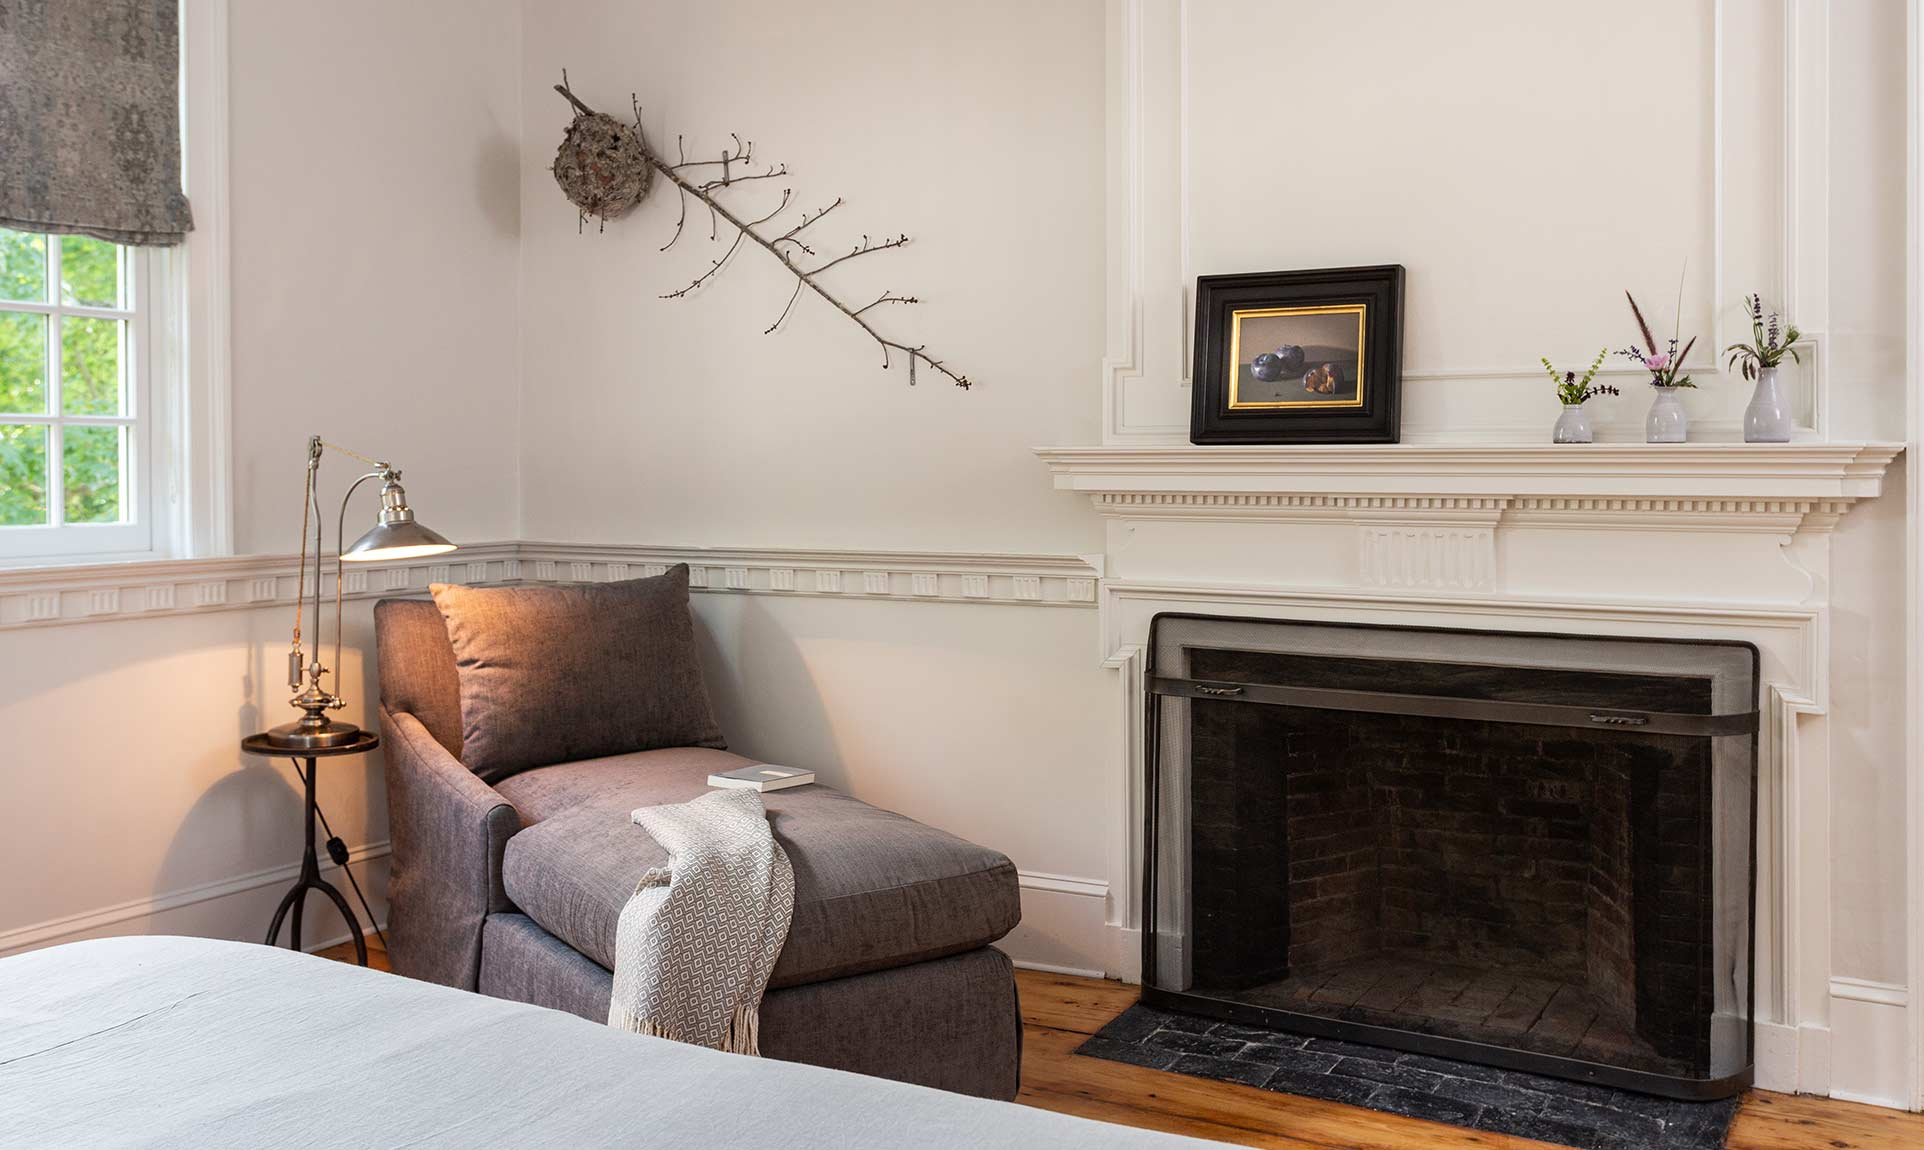 Scott Room Seating Area and Decorative Fireplace